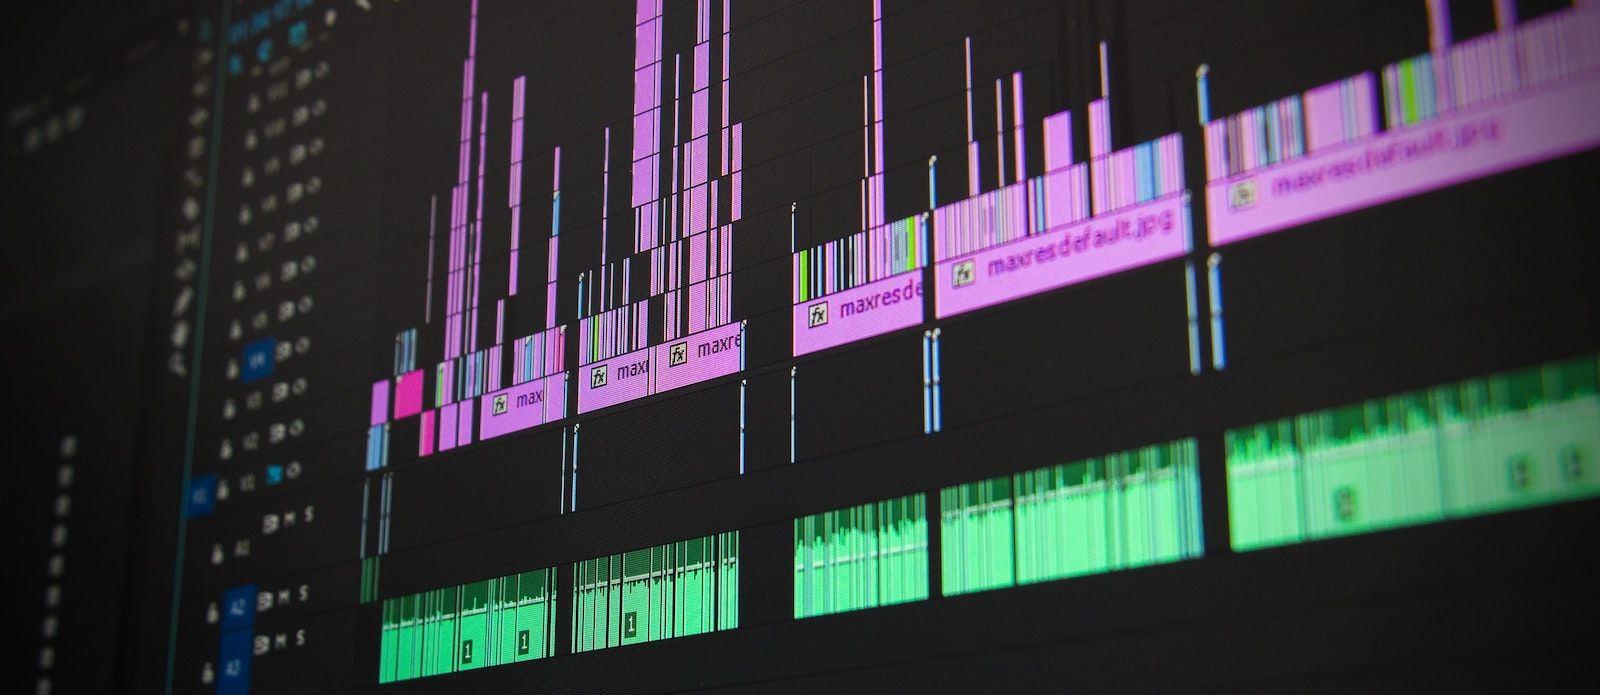 Picture of a Video Editing Program - Inbound Content Marketing Strategy for Higher Education